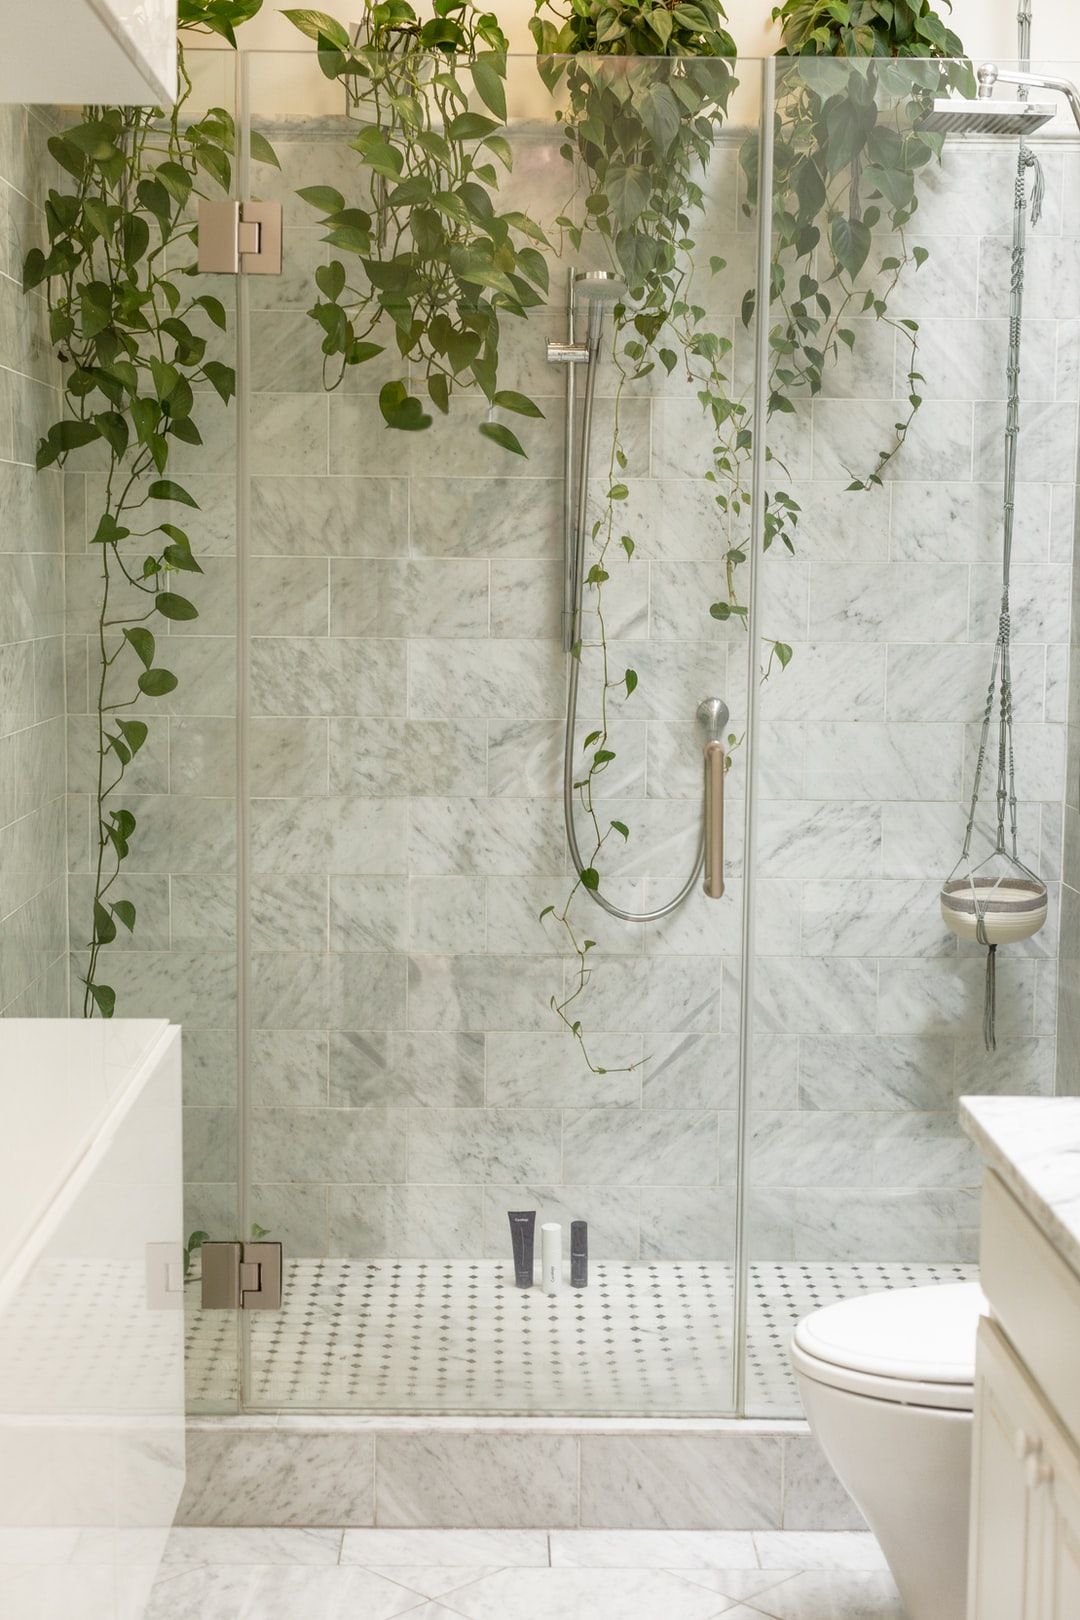 skincare products in glass shower with plants